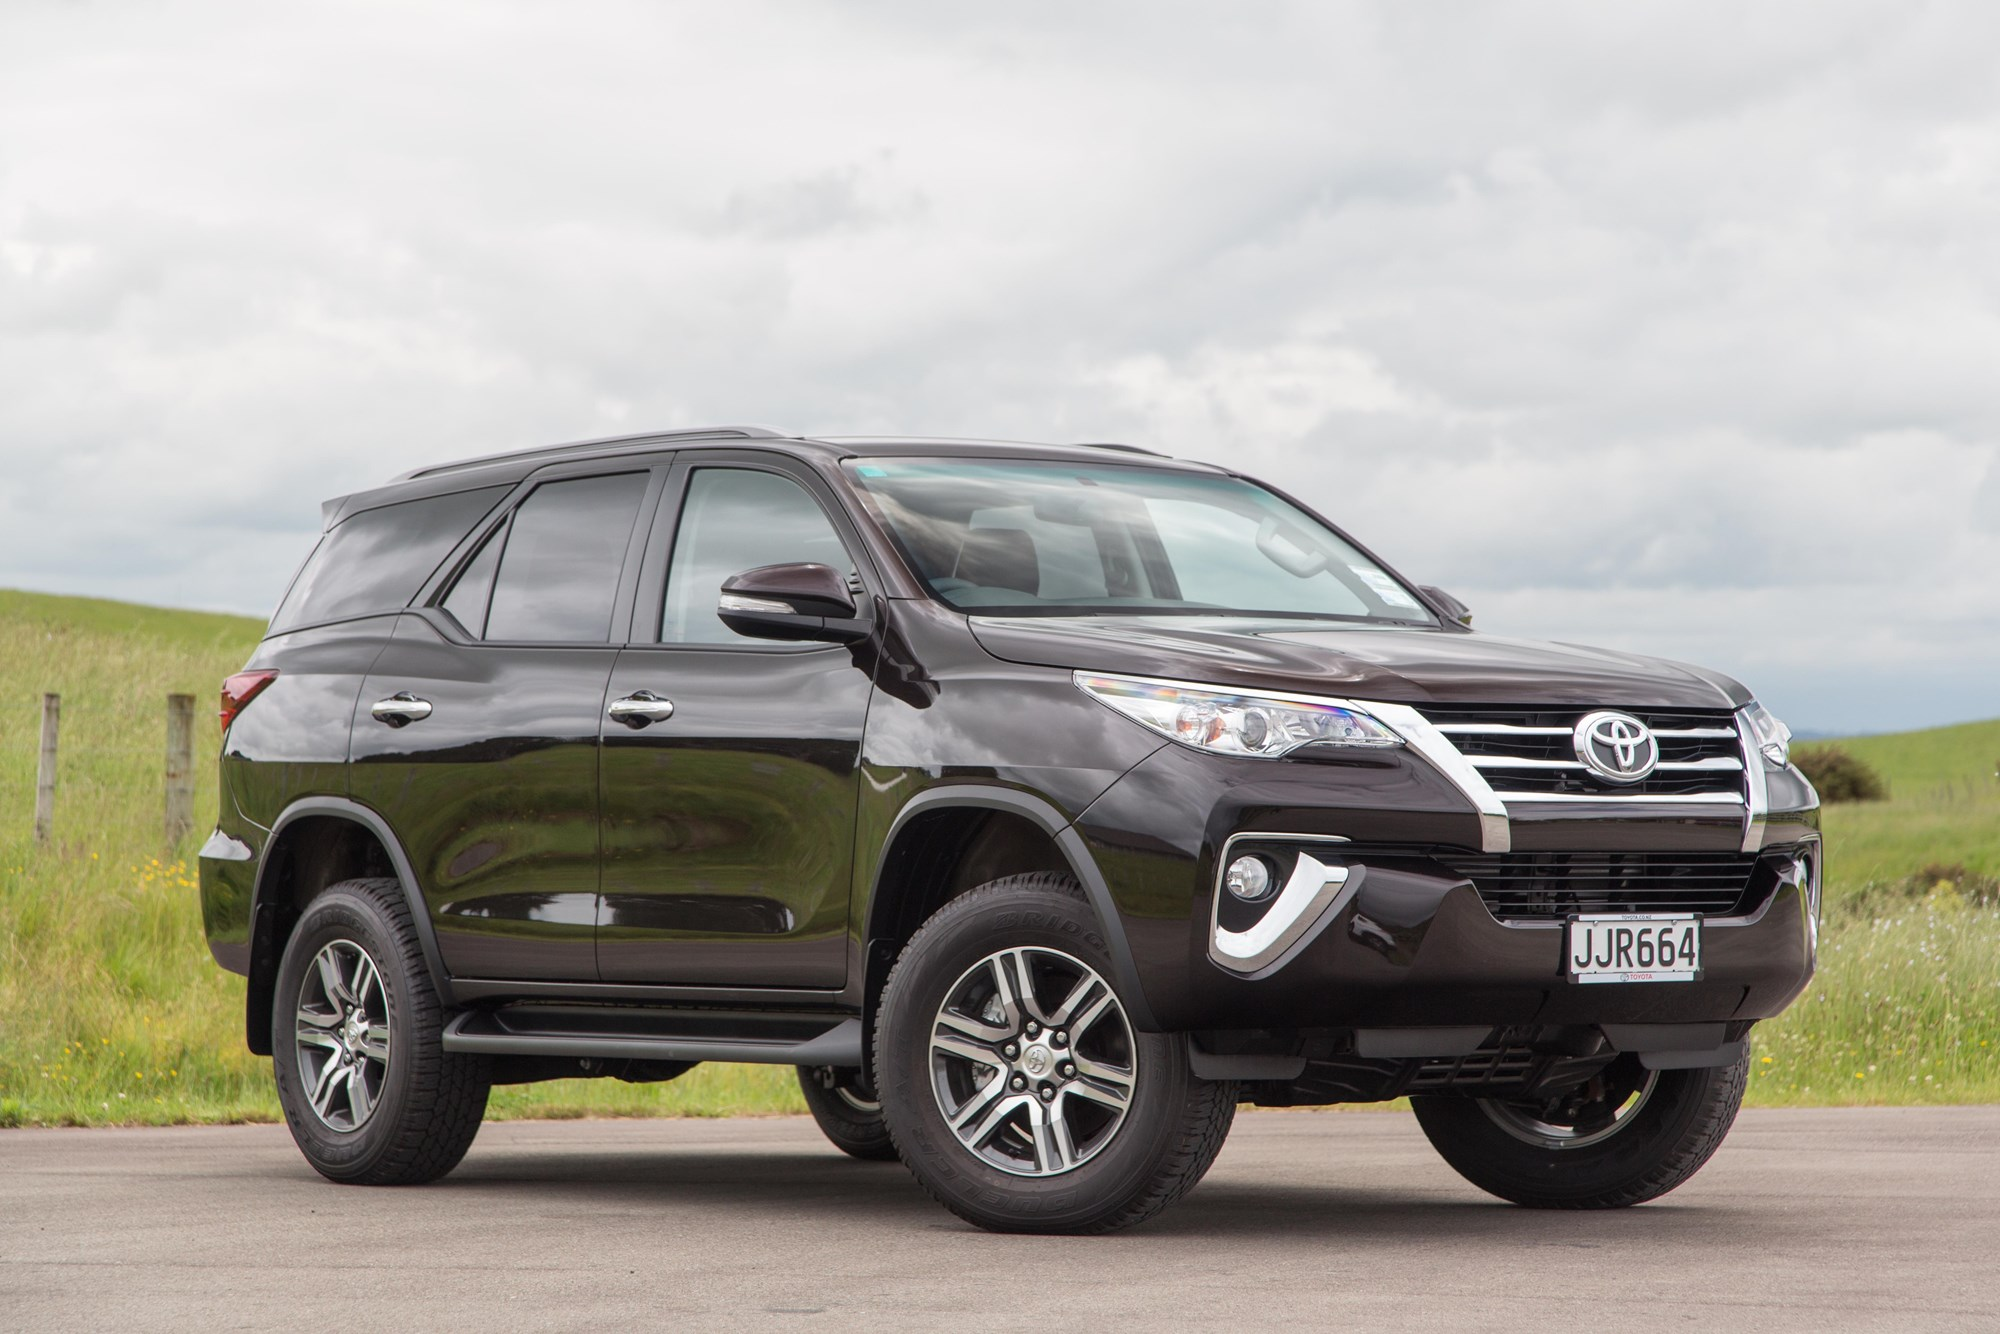 Toyota Suv For Sale >> Toyota Fortuner a future favourite - Road tests - Driven